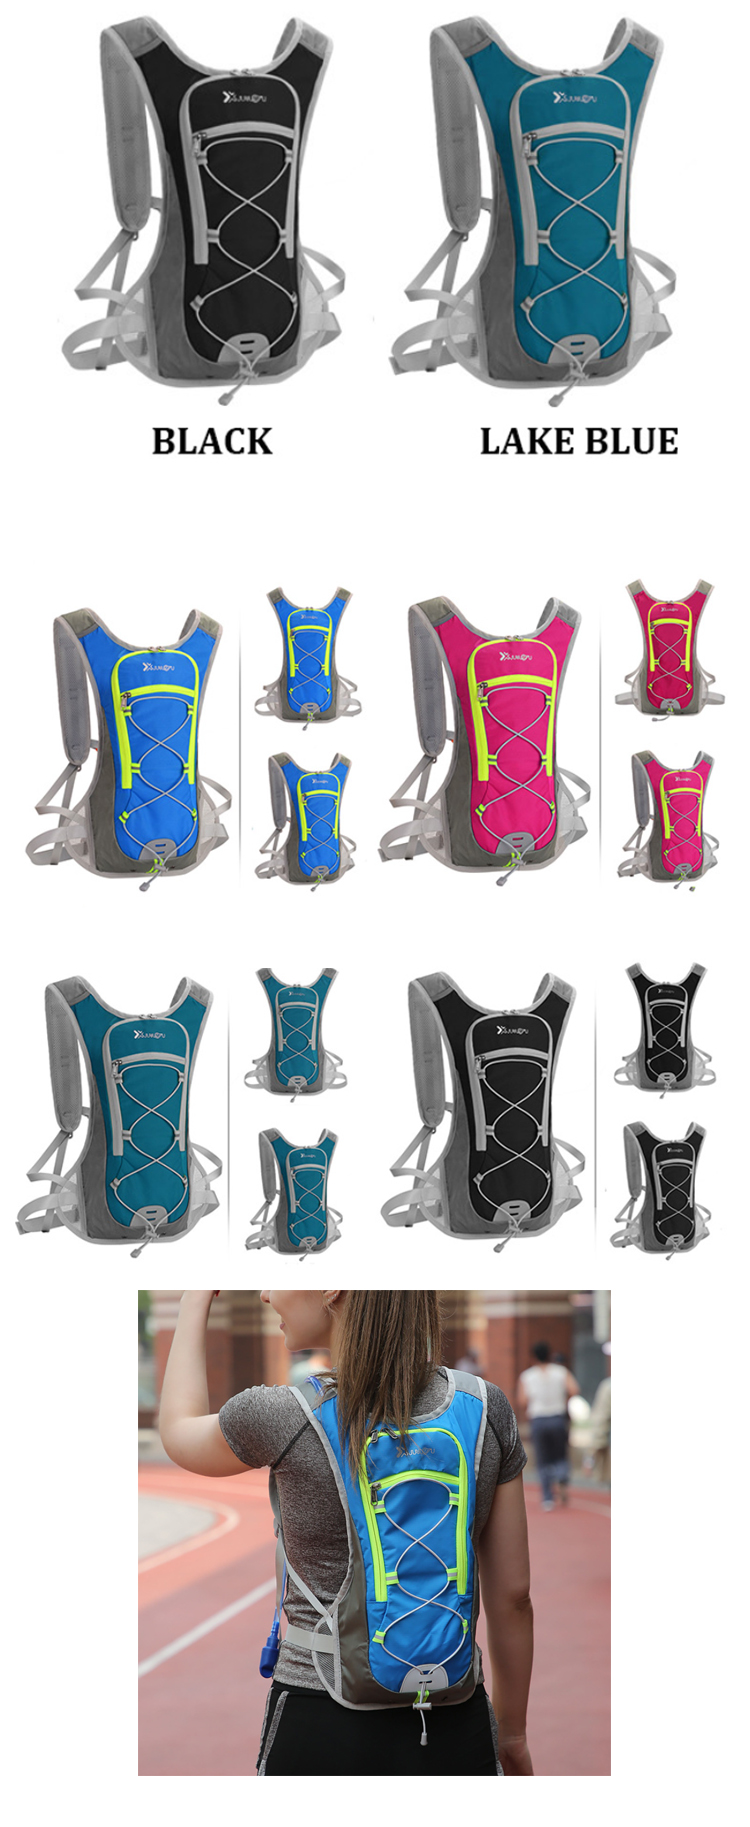 Osgoodway 2L 0utdoor Nylon Hydration Backpack Water Backpack Hydration Pack for Hiking cycling